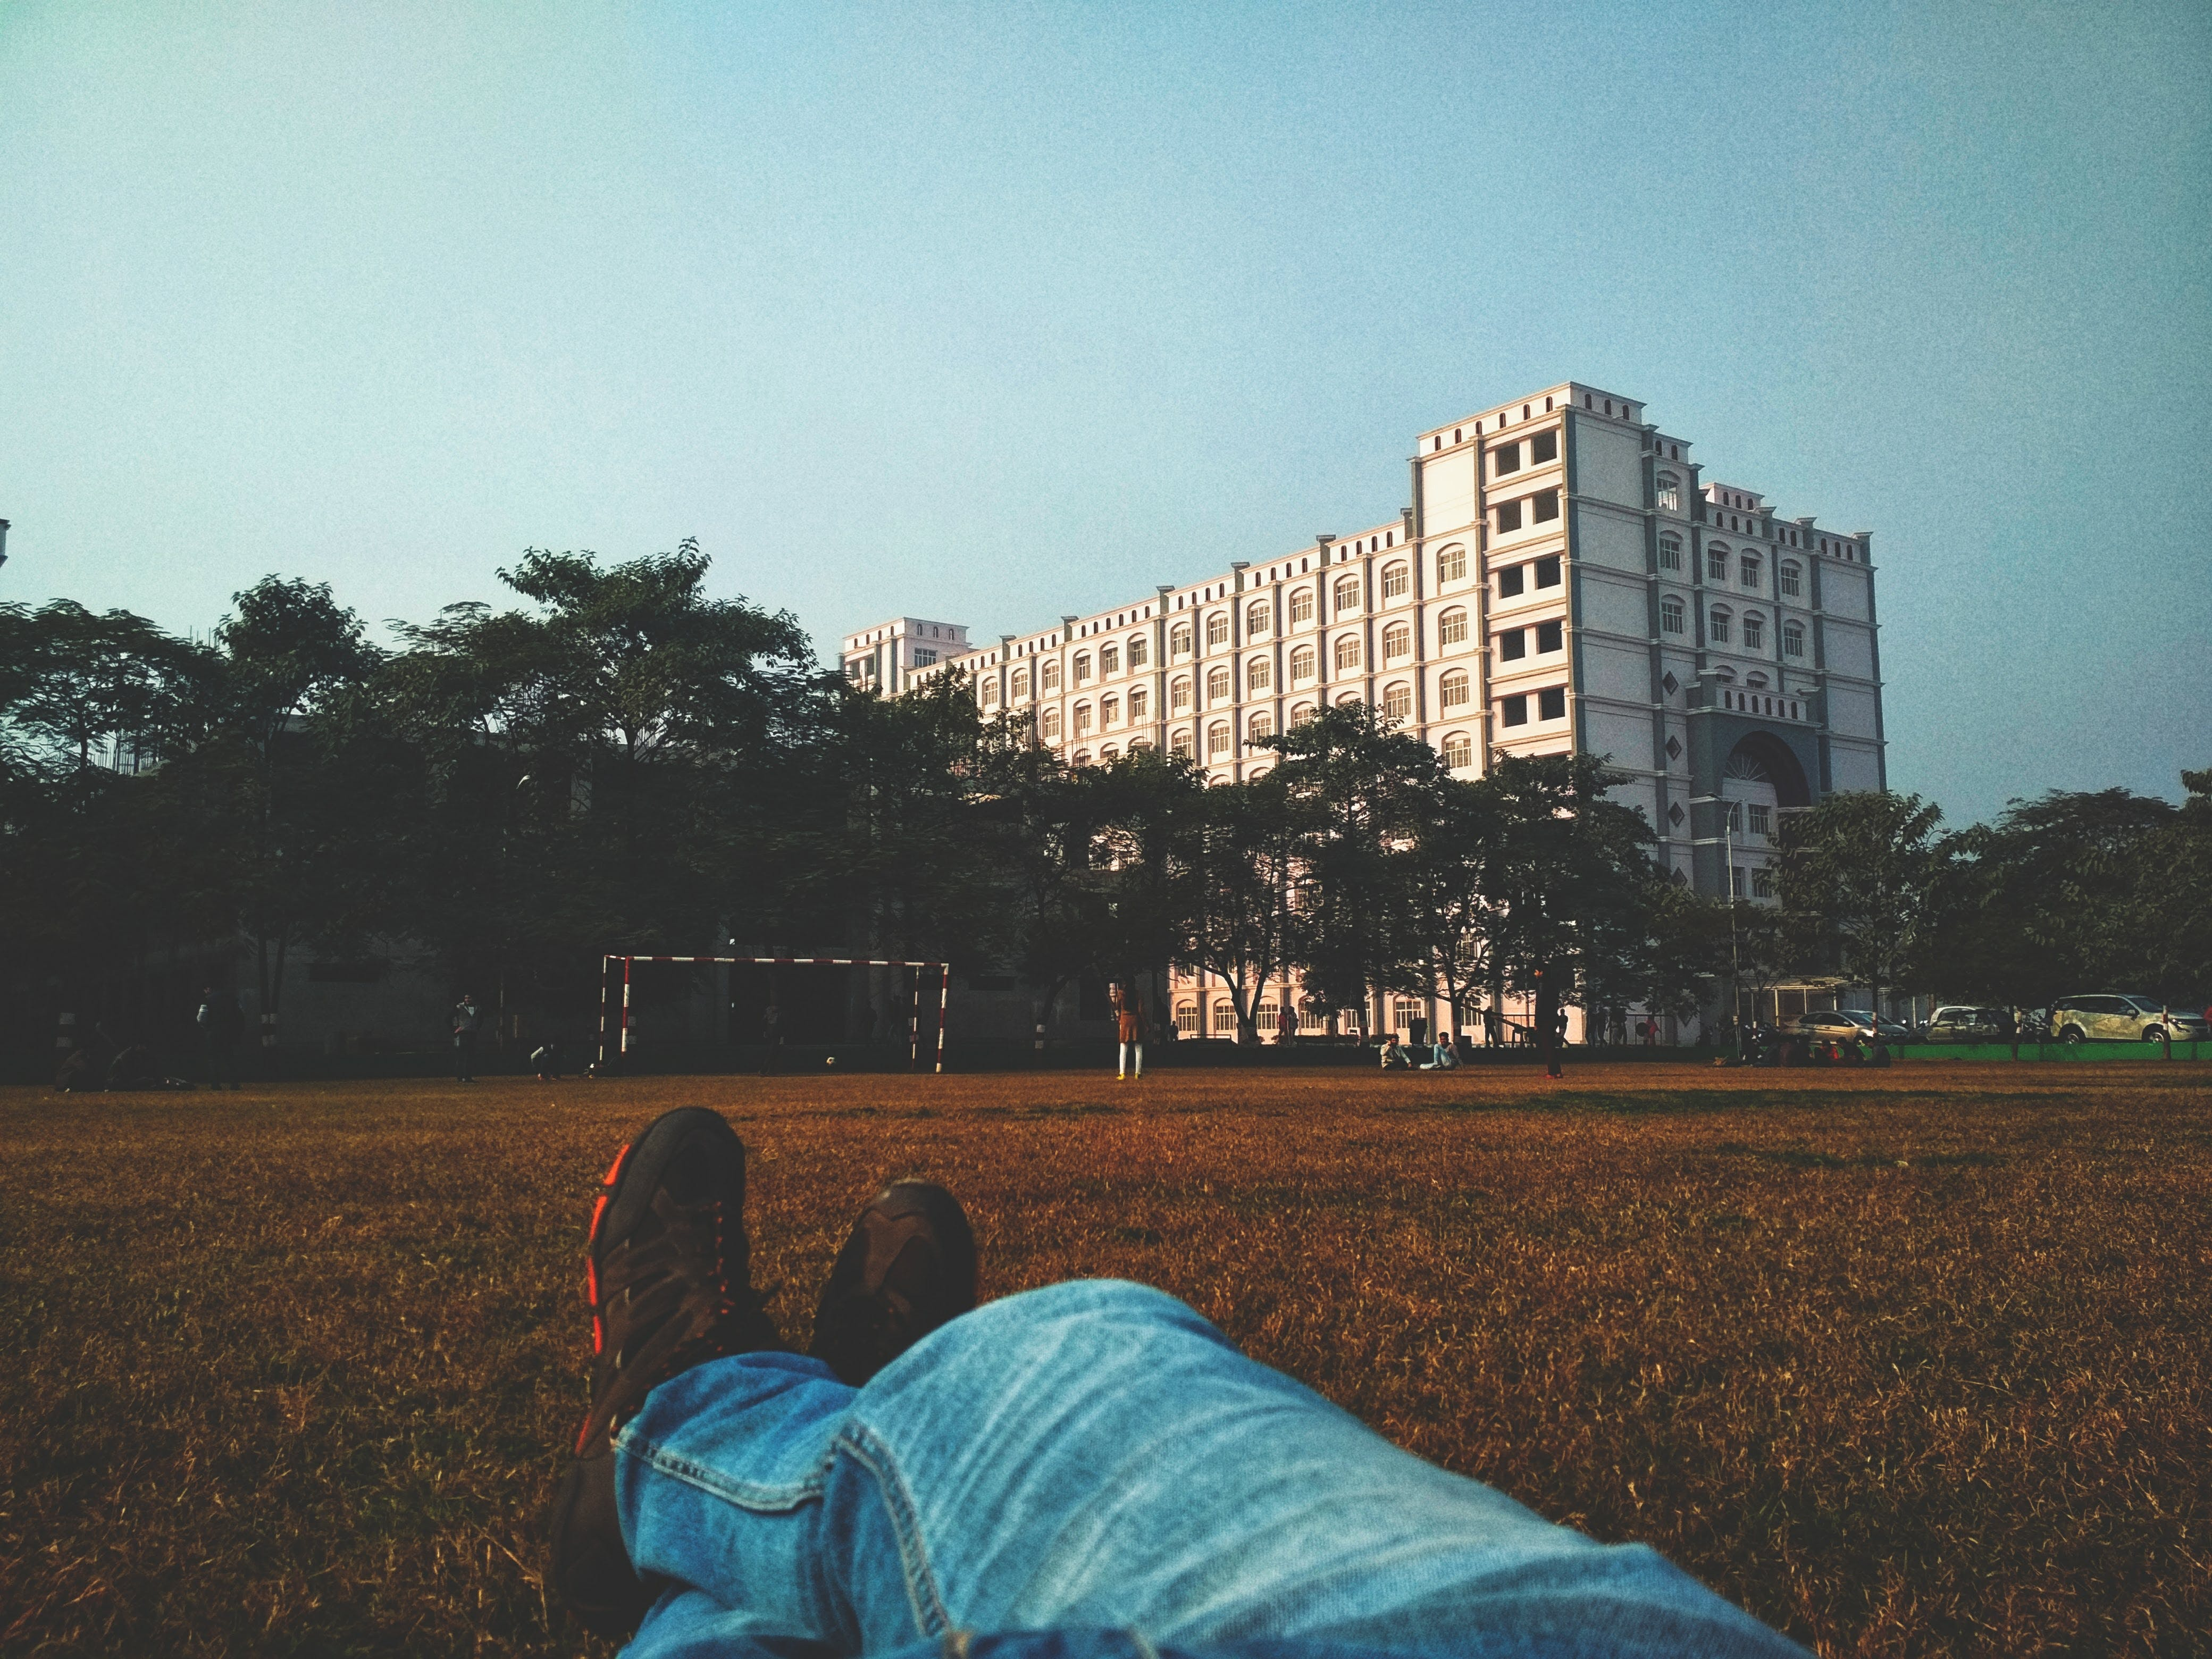 Person in Blue Denim Jean Lying on Brown Grass Field Looking at White Multi-storey Building